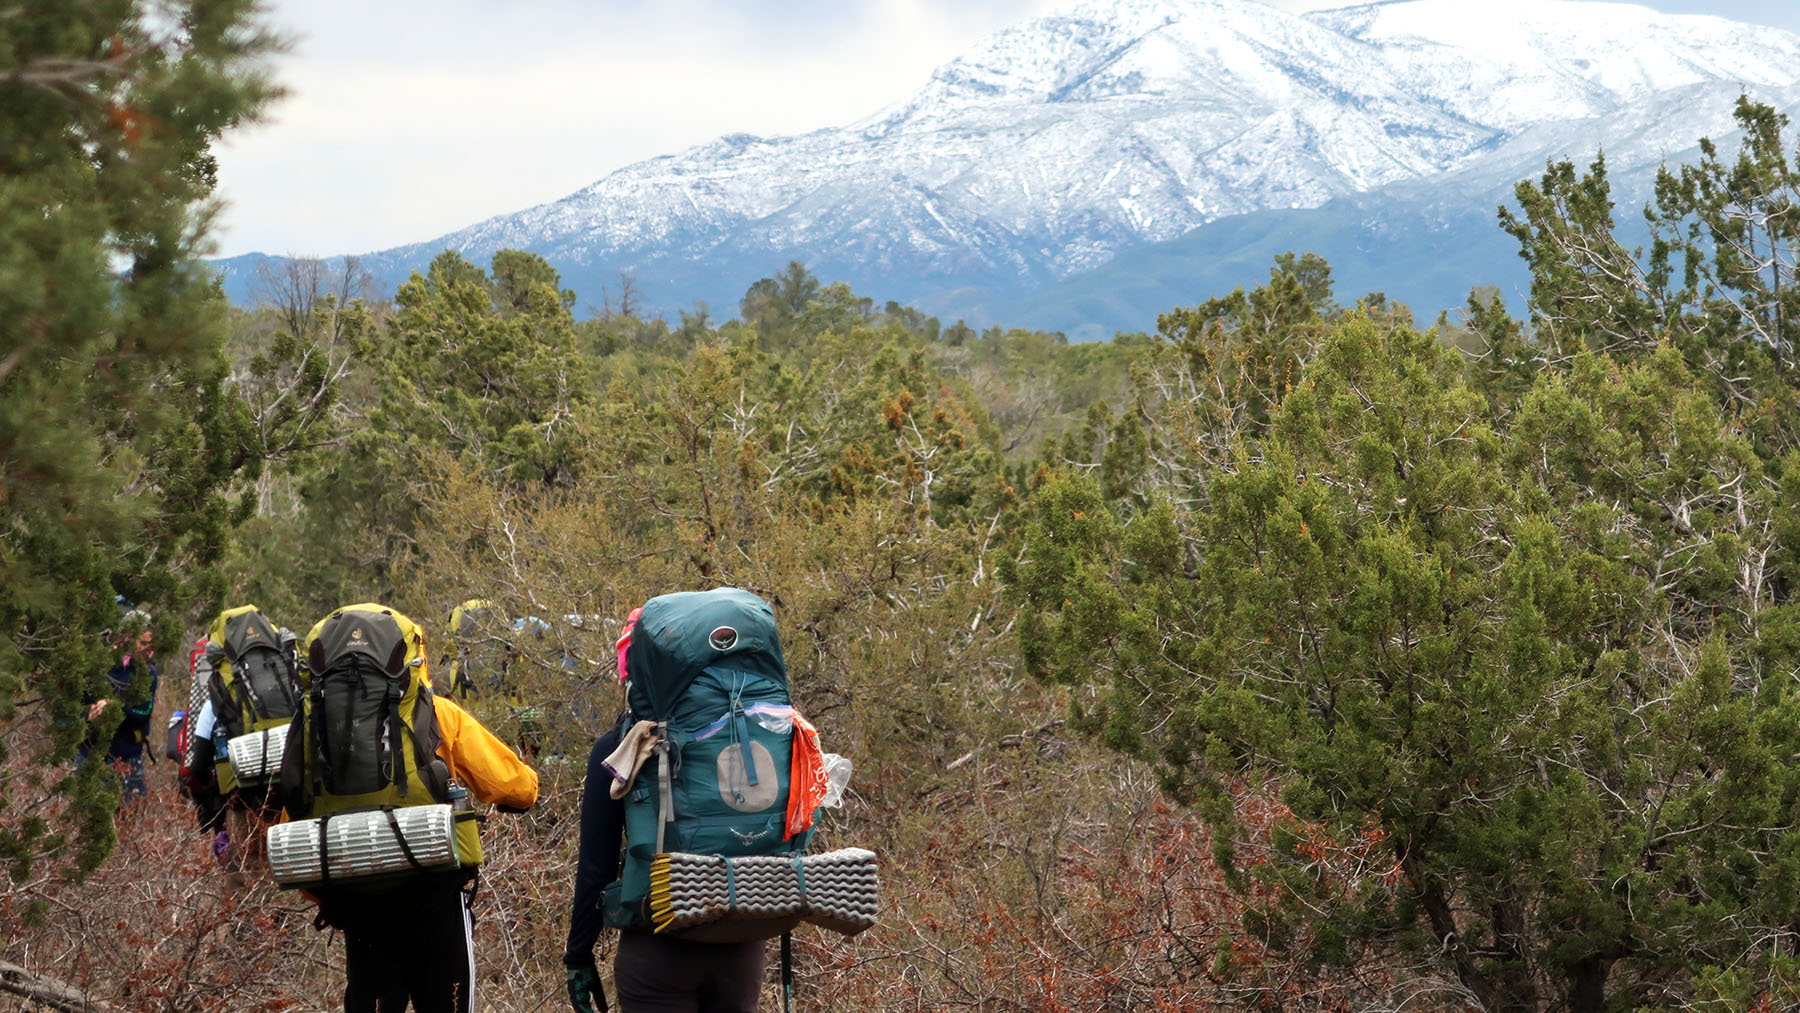 Two students backpacking with a large mountain backdrop